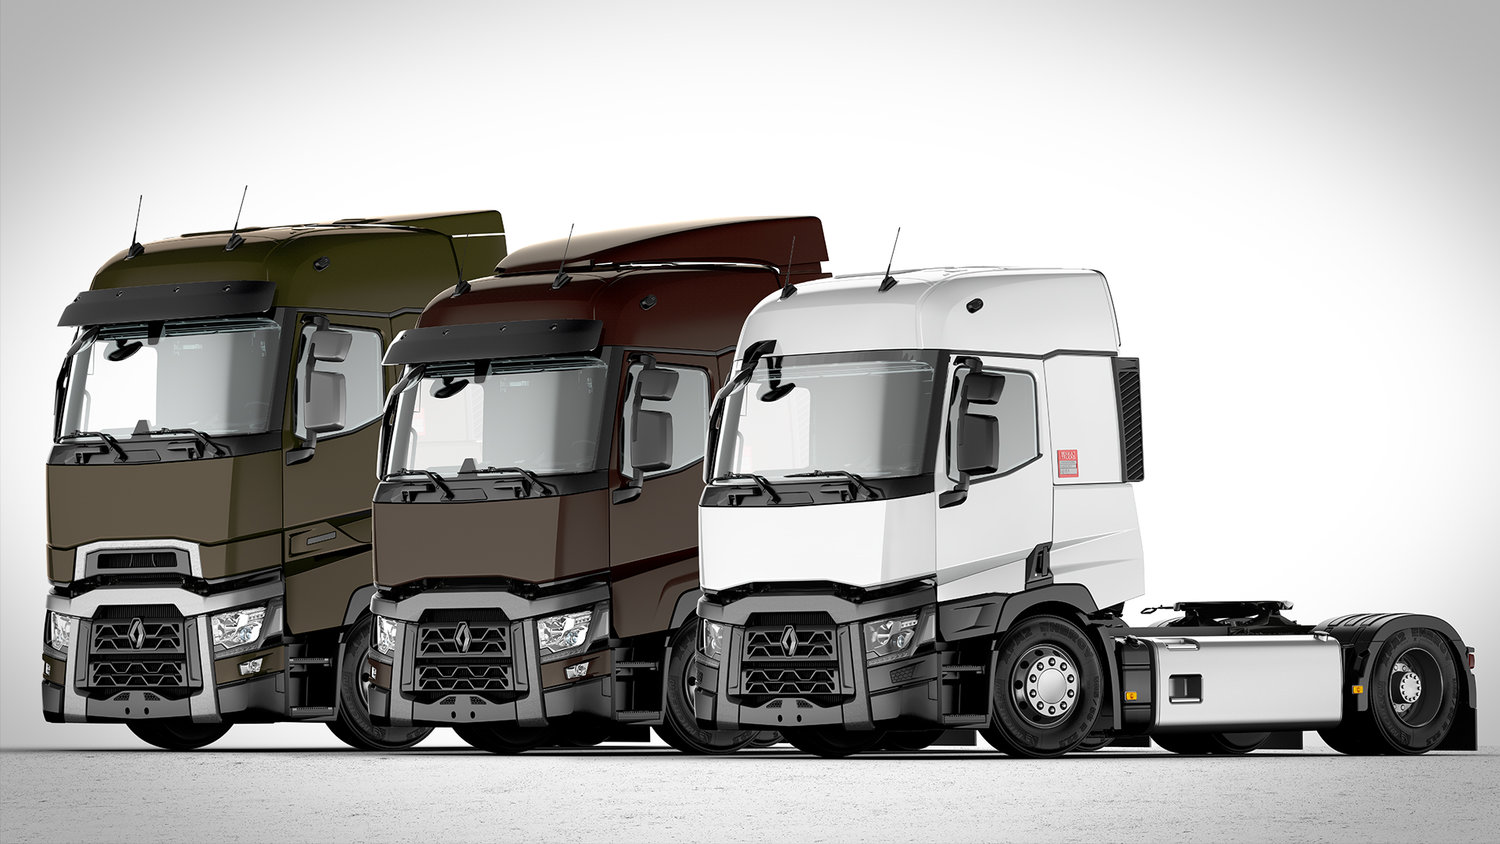 renault trucks unveils its second generation of electric trucks a complete z e range from 3 5. Black Bedroom Furniture Sets. Home Design Ideas